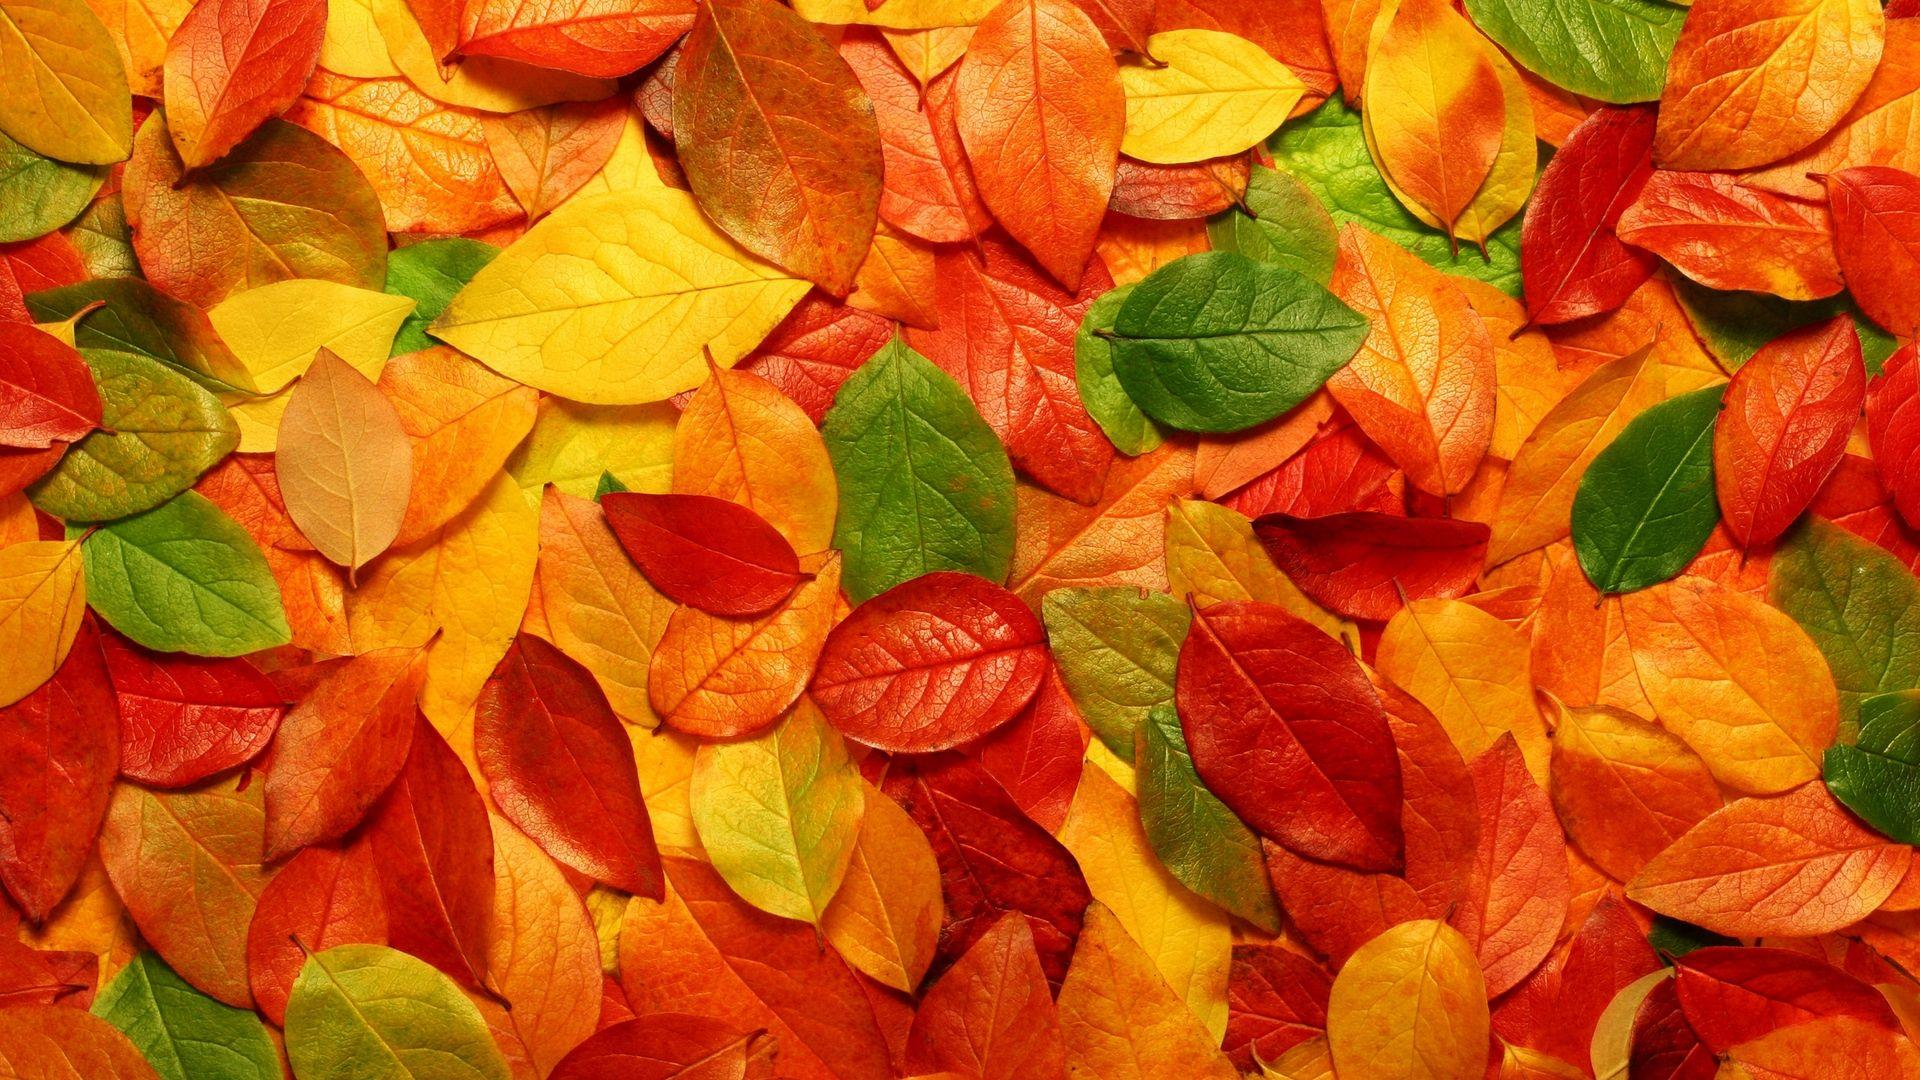 Autumn Leaves HD Wallpaper - Wallpaper Stream